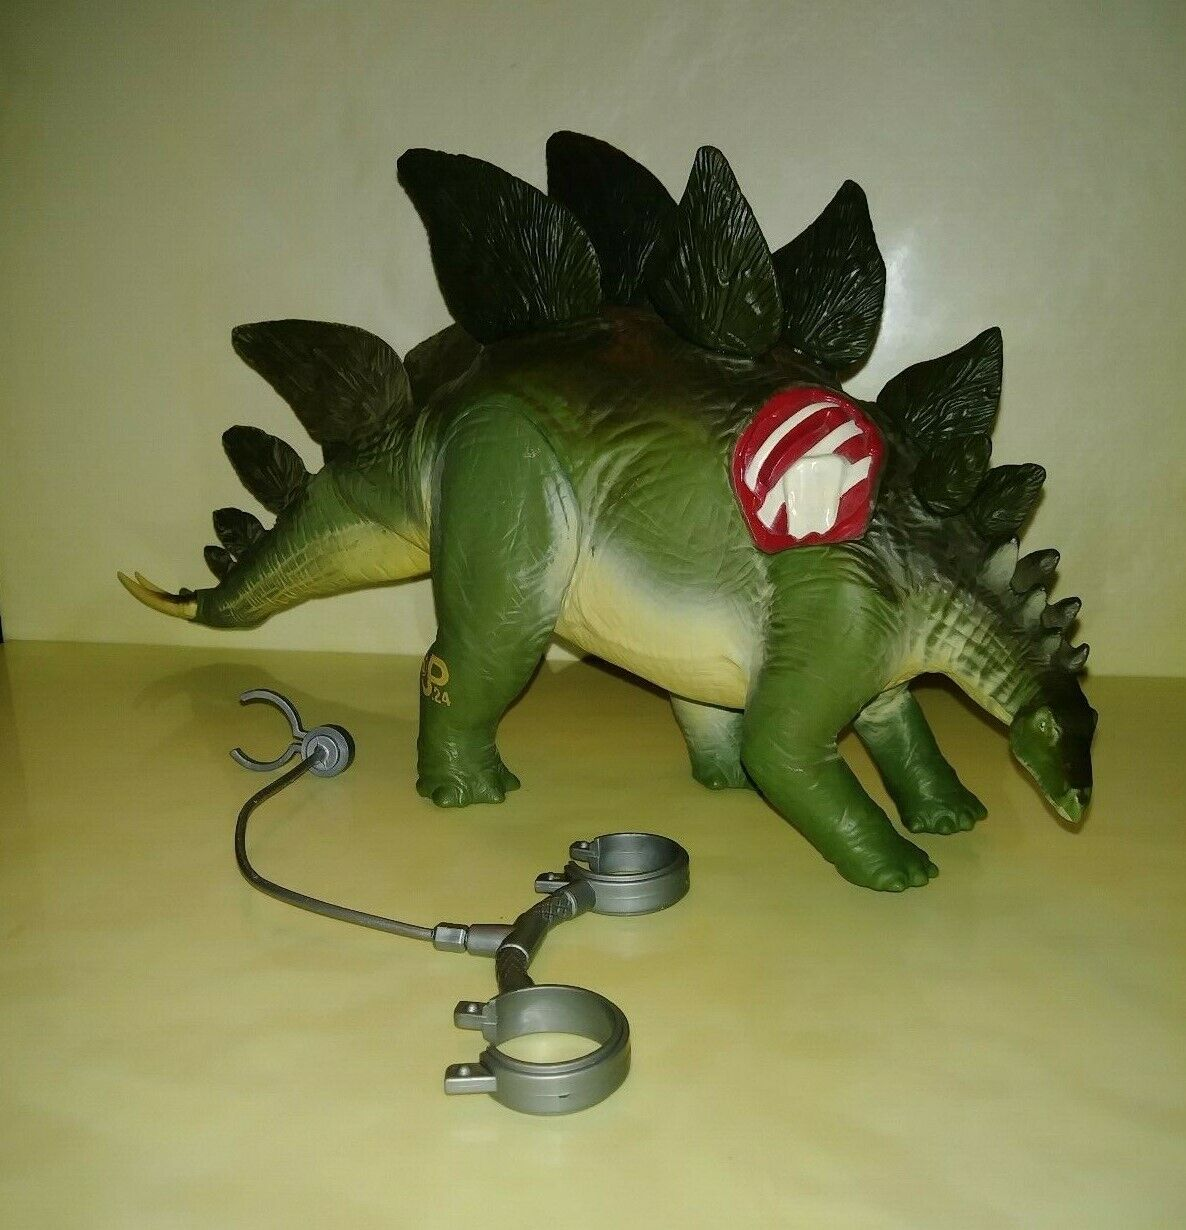 1997 The Lost World  Jurassic Park DINO-STRIKE STEGOSAURUS, Whipping Tail Action